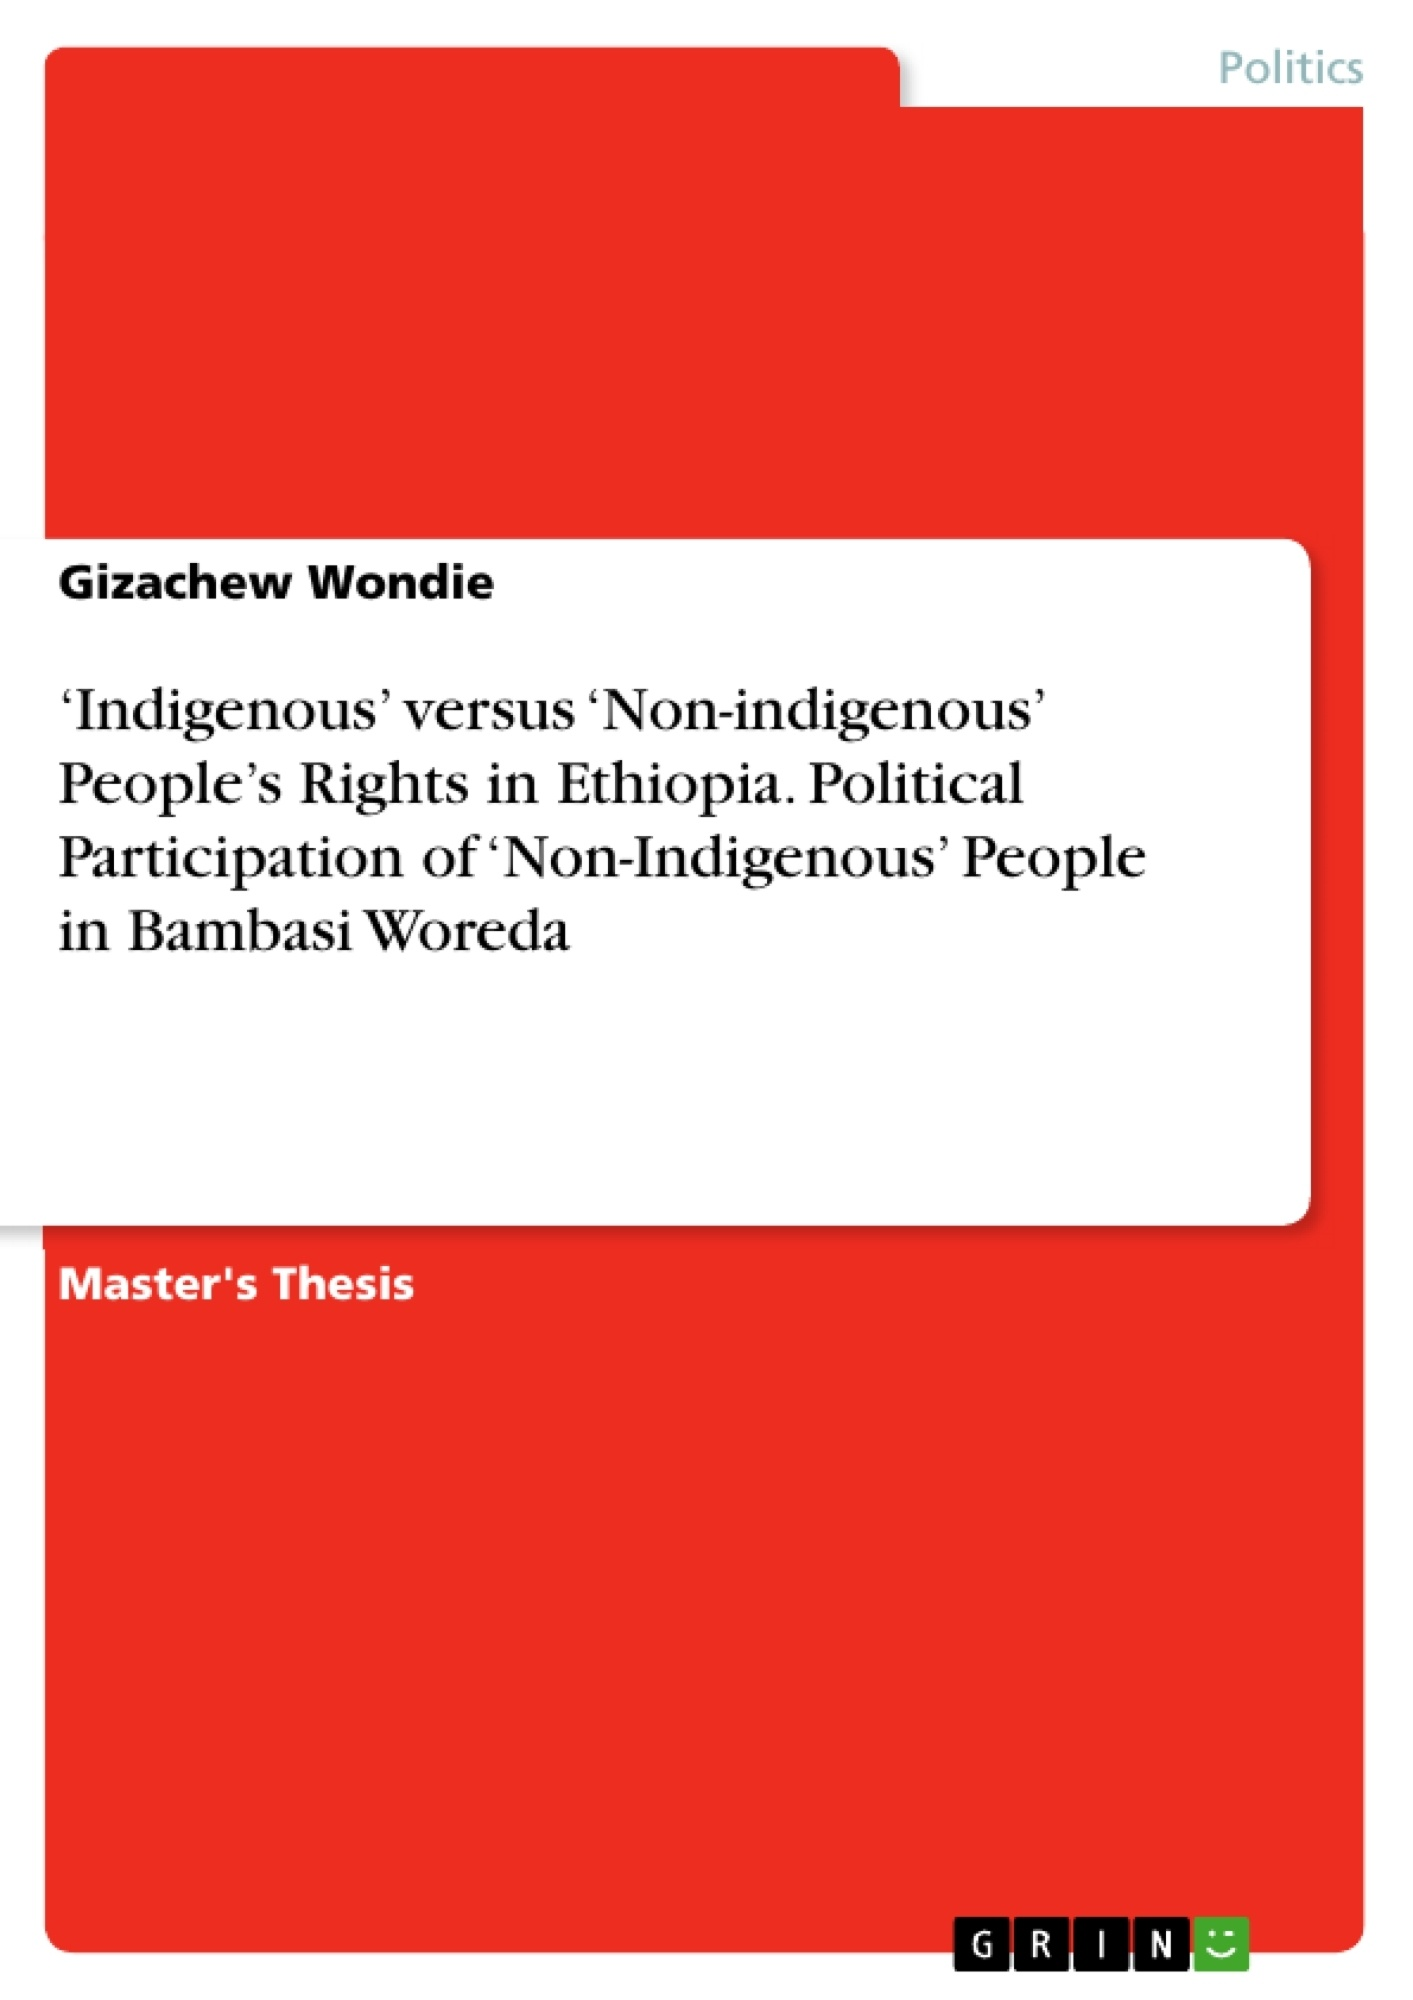 GRIN - 'Indigenous' versus 'Non-indigenous' People's Rights in Ethiopia   Political Participation of 'Non-Indigenous' People in Bambasi